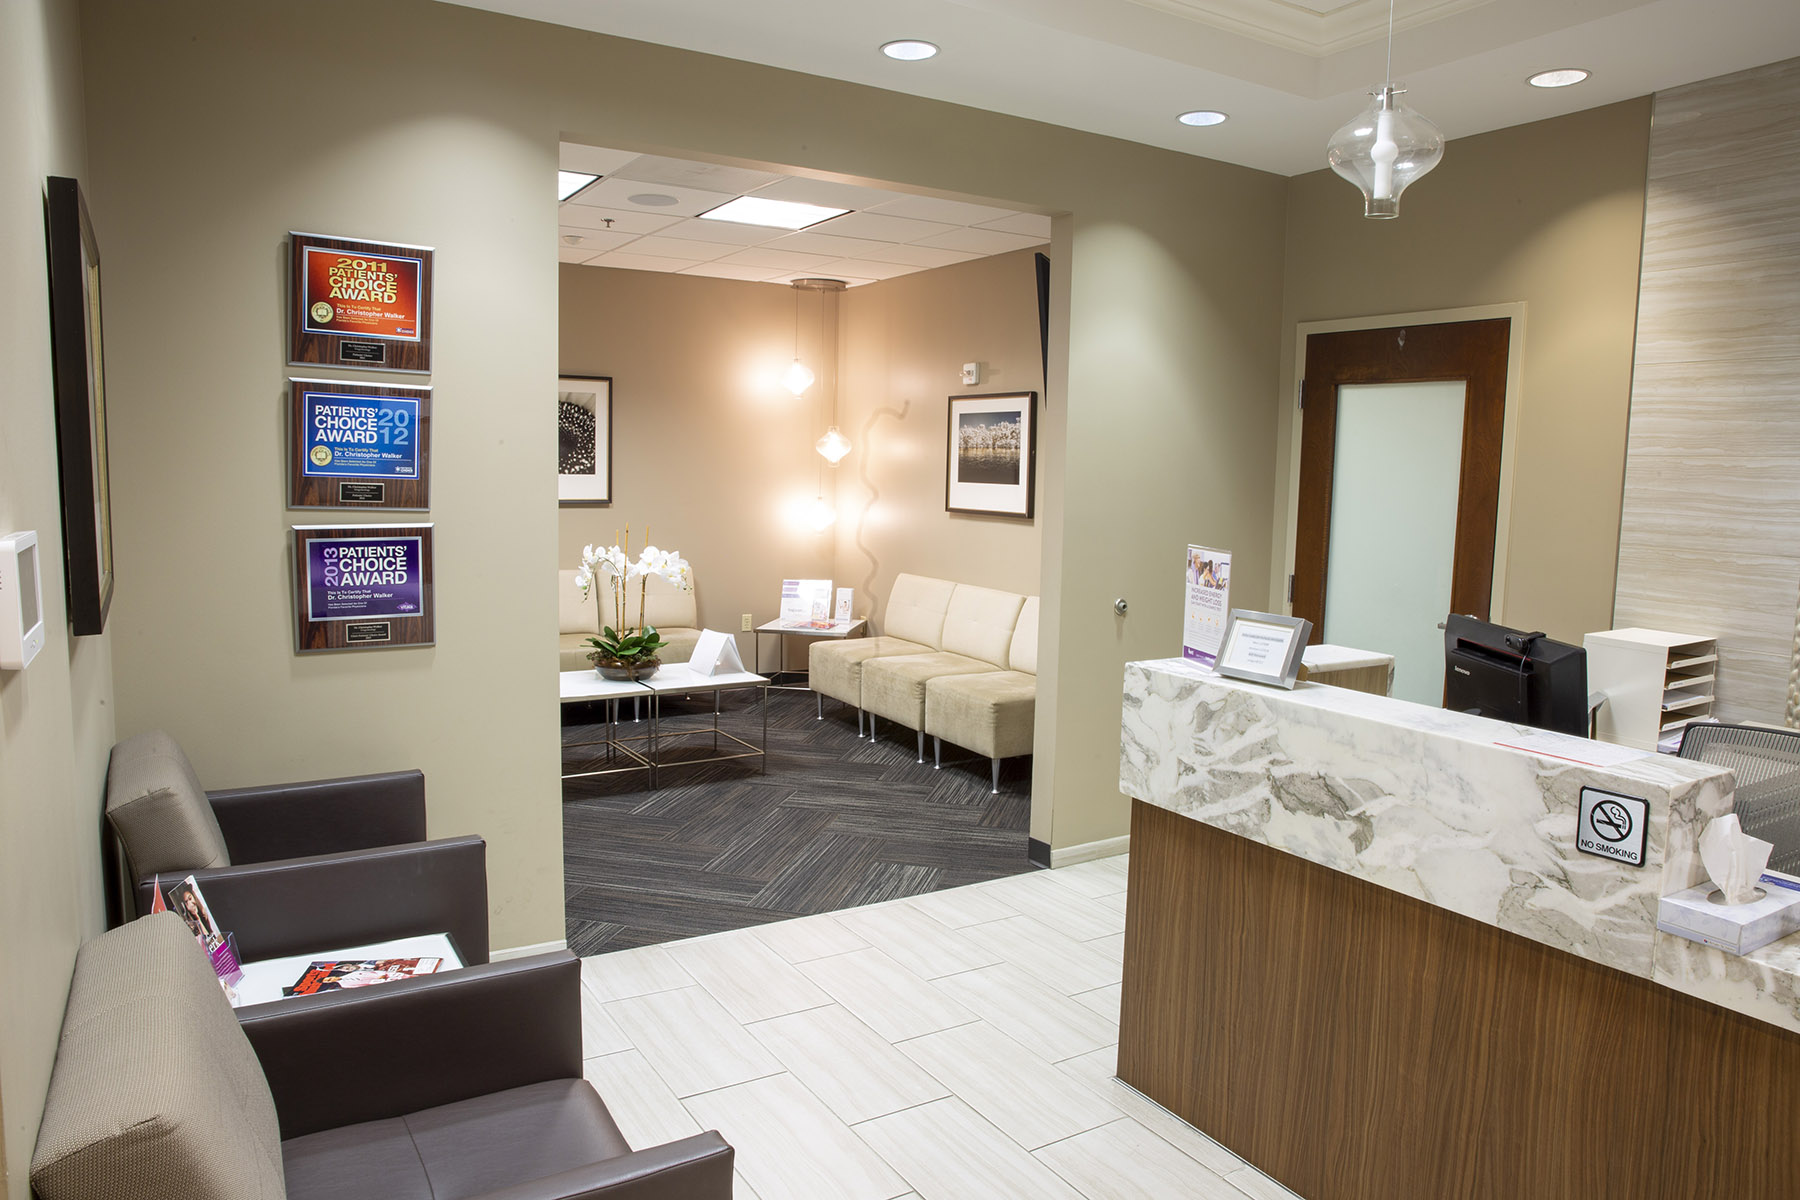 UroGyn Specialists - Reception Area